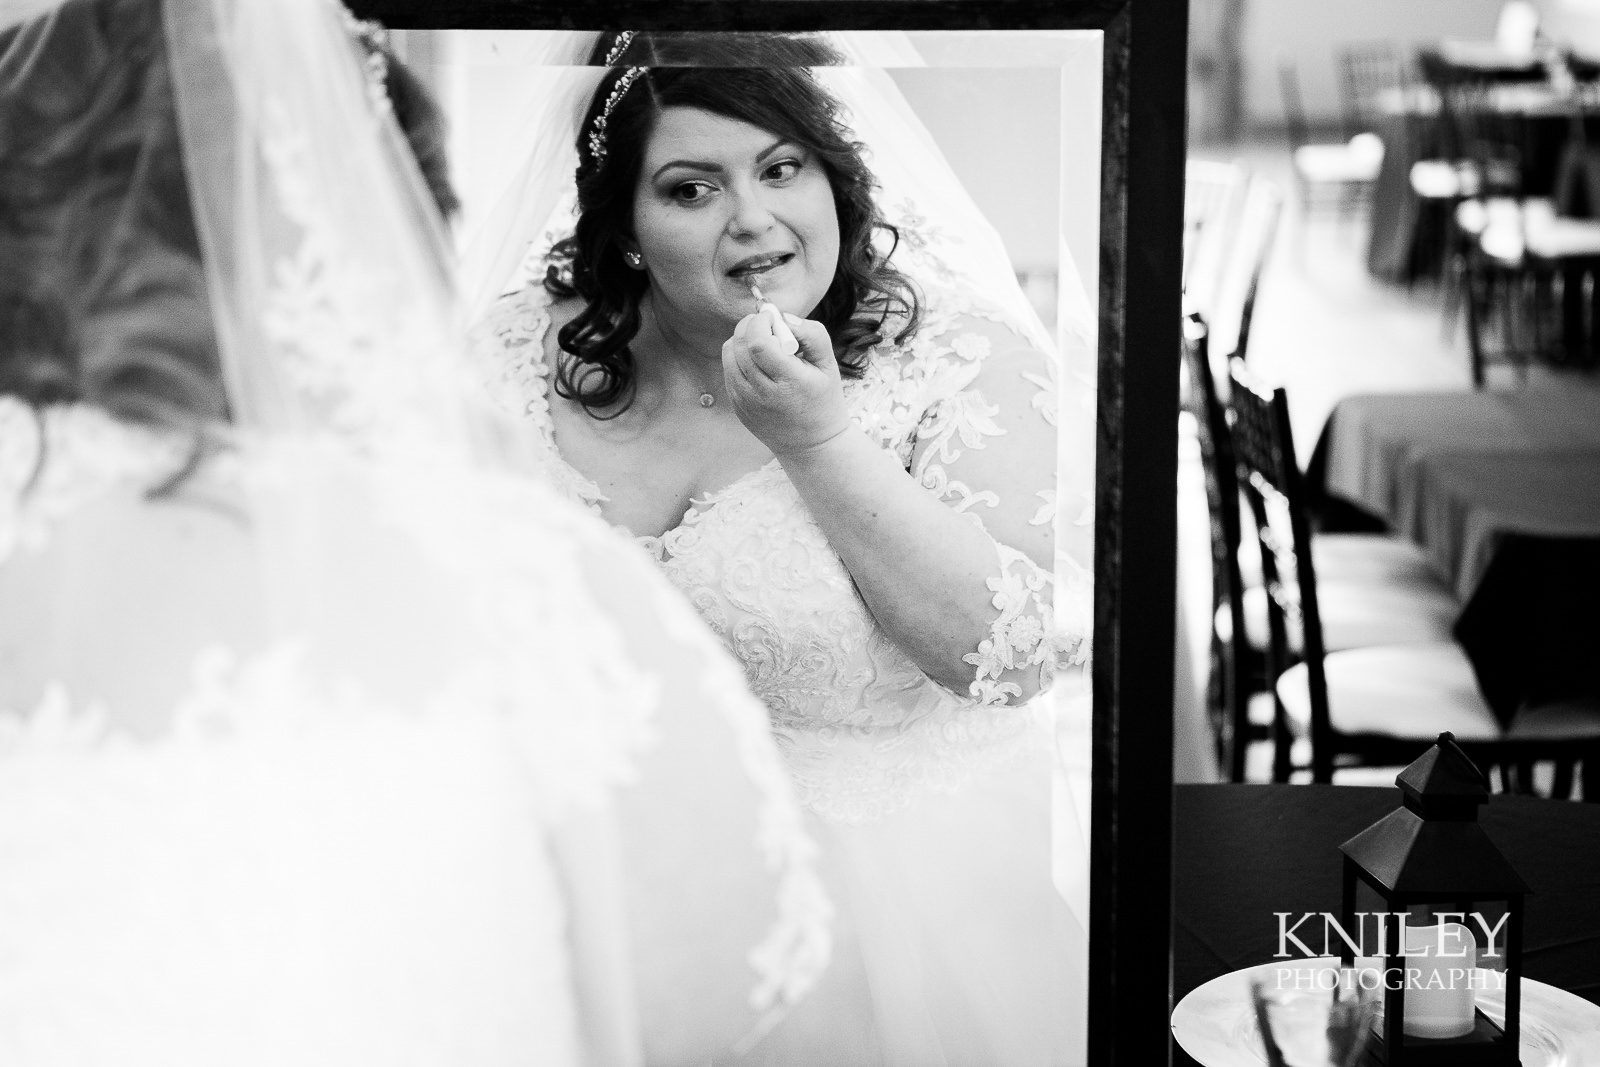 025 - Westminster Chapel - Rochester NY wedding photo - Kniley Photography.jpg